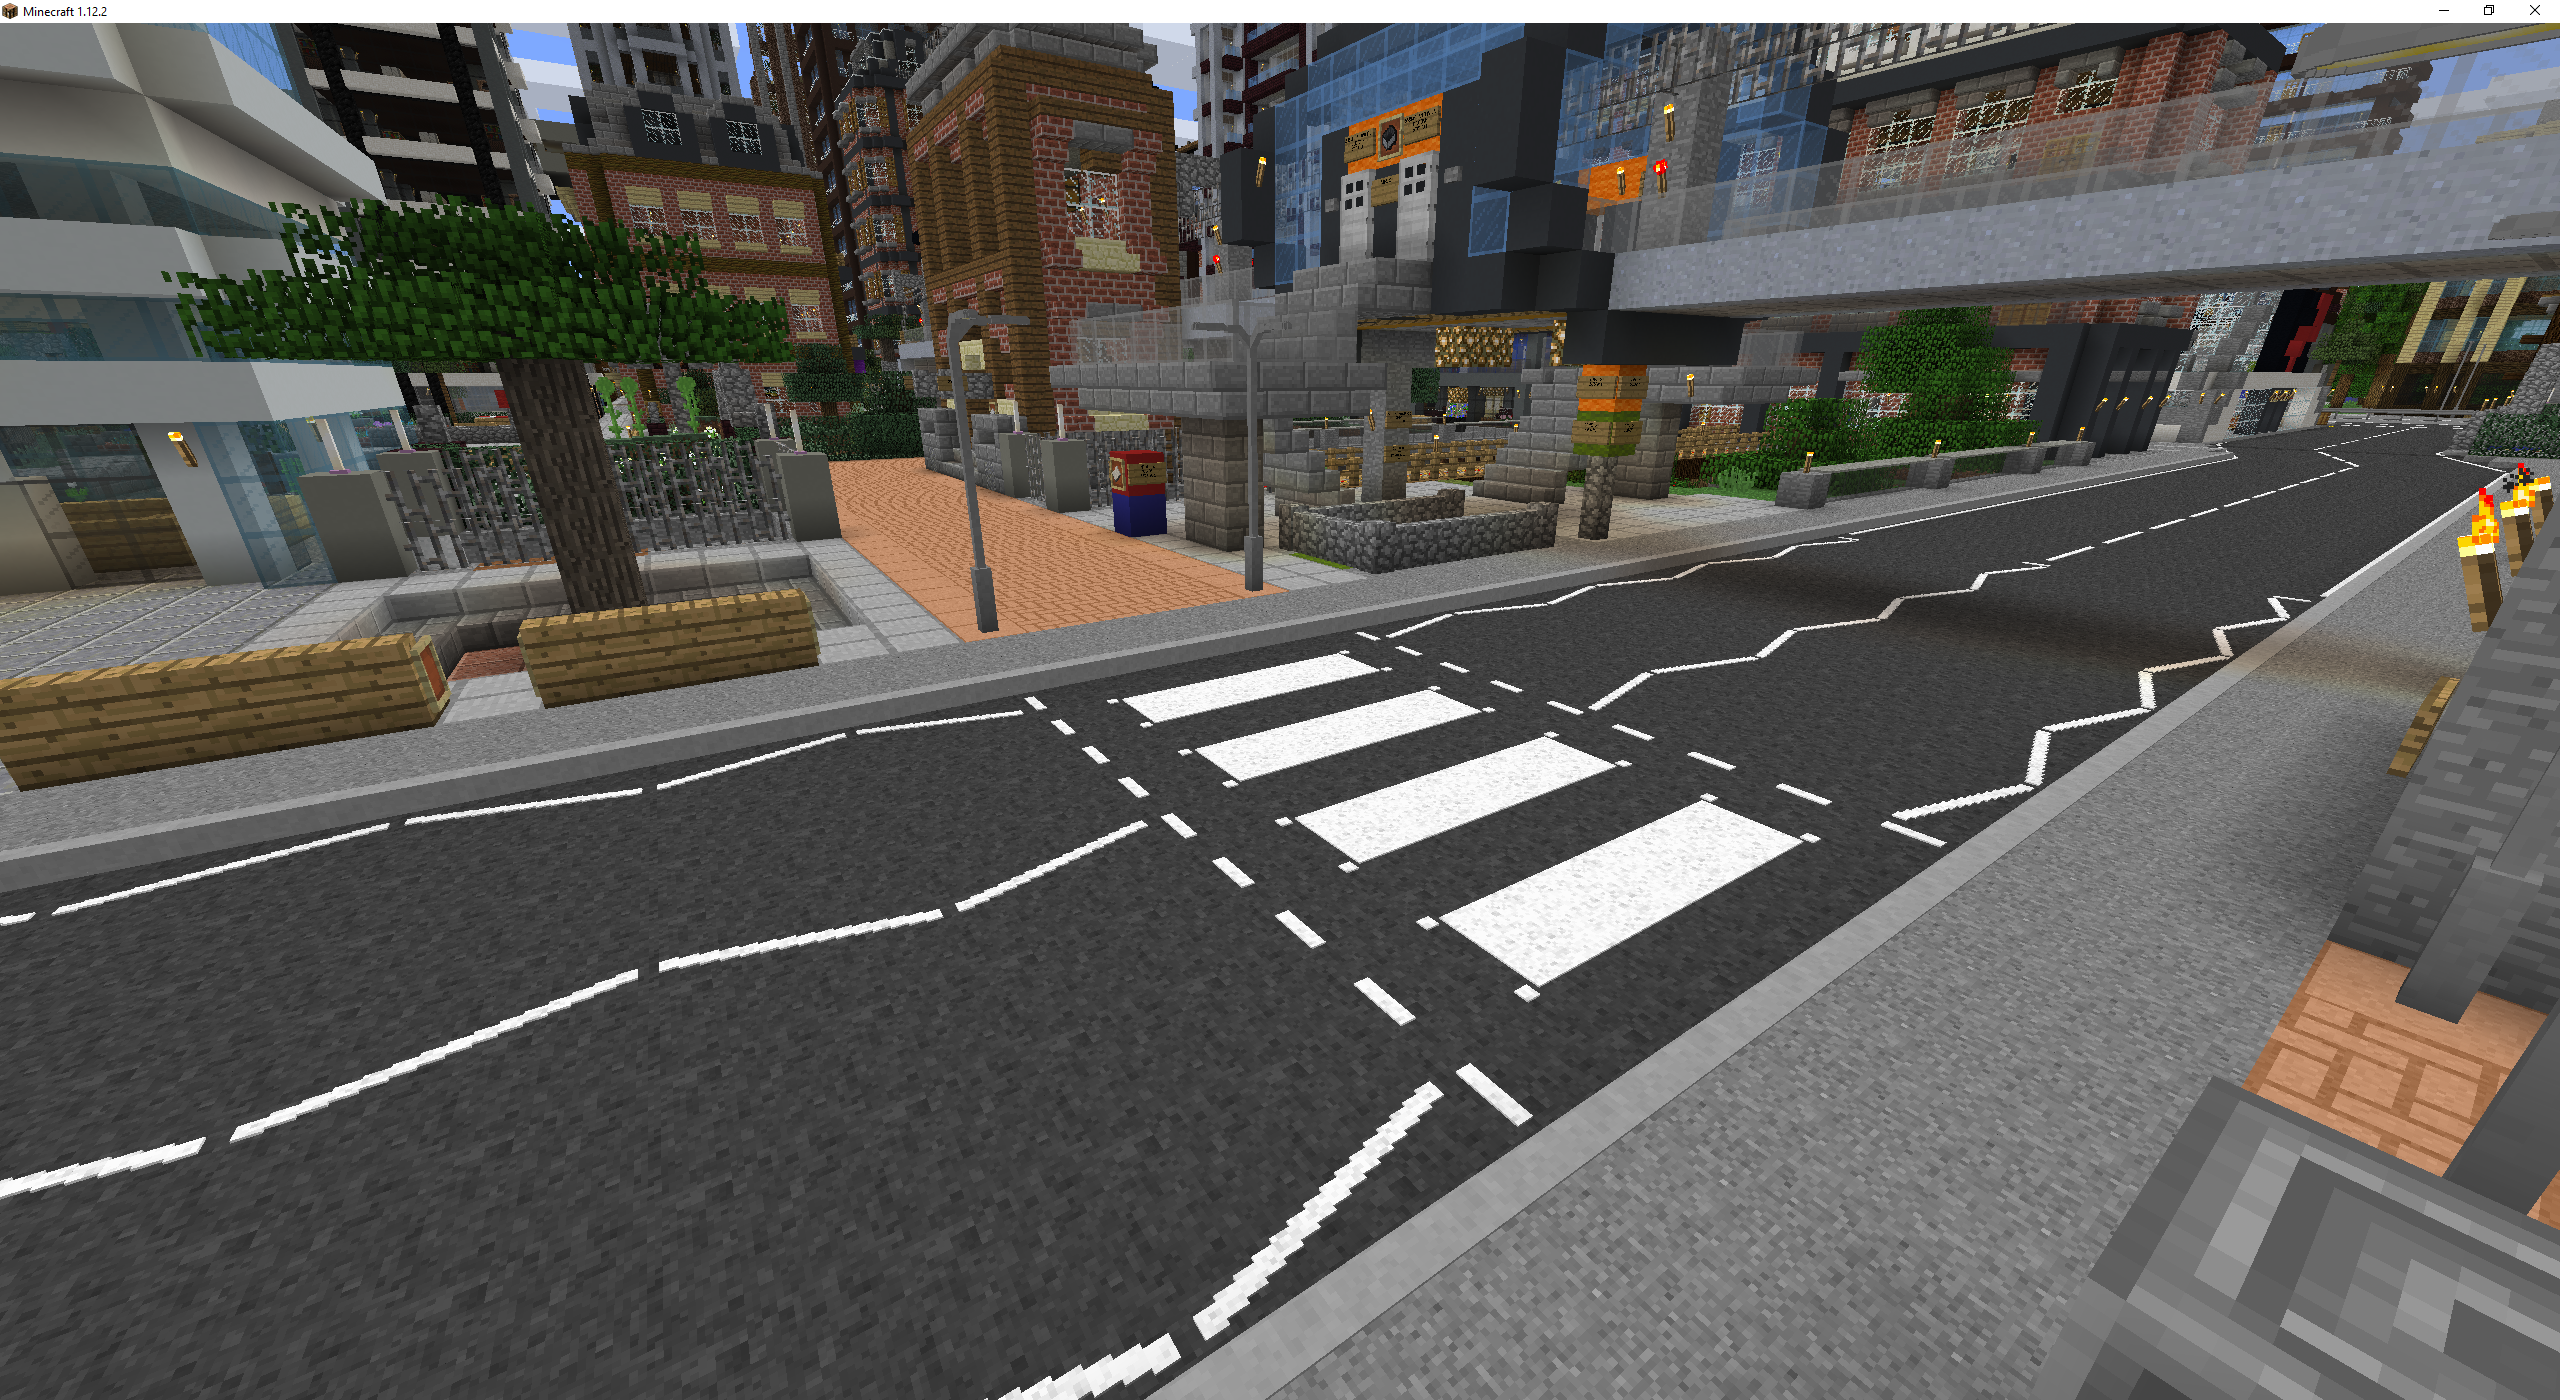 A UK-style Zebra Crossing